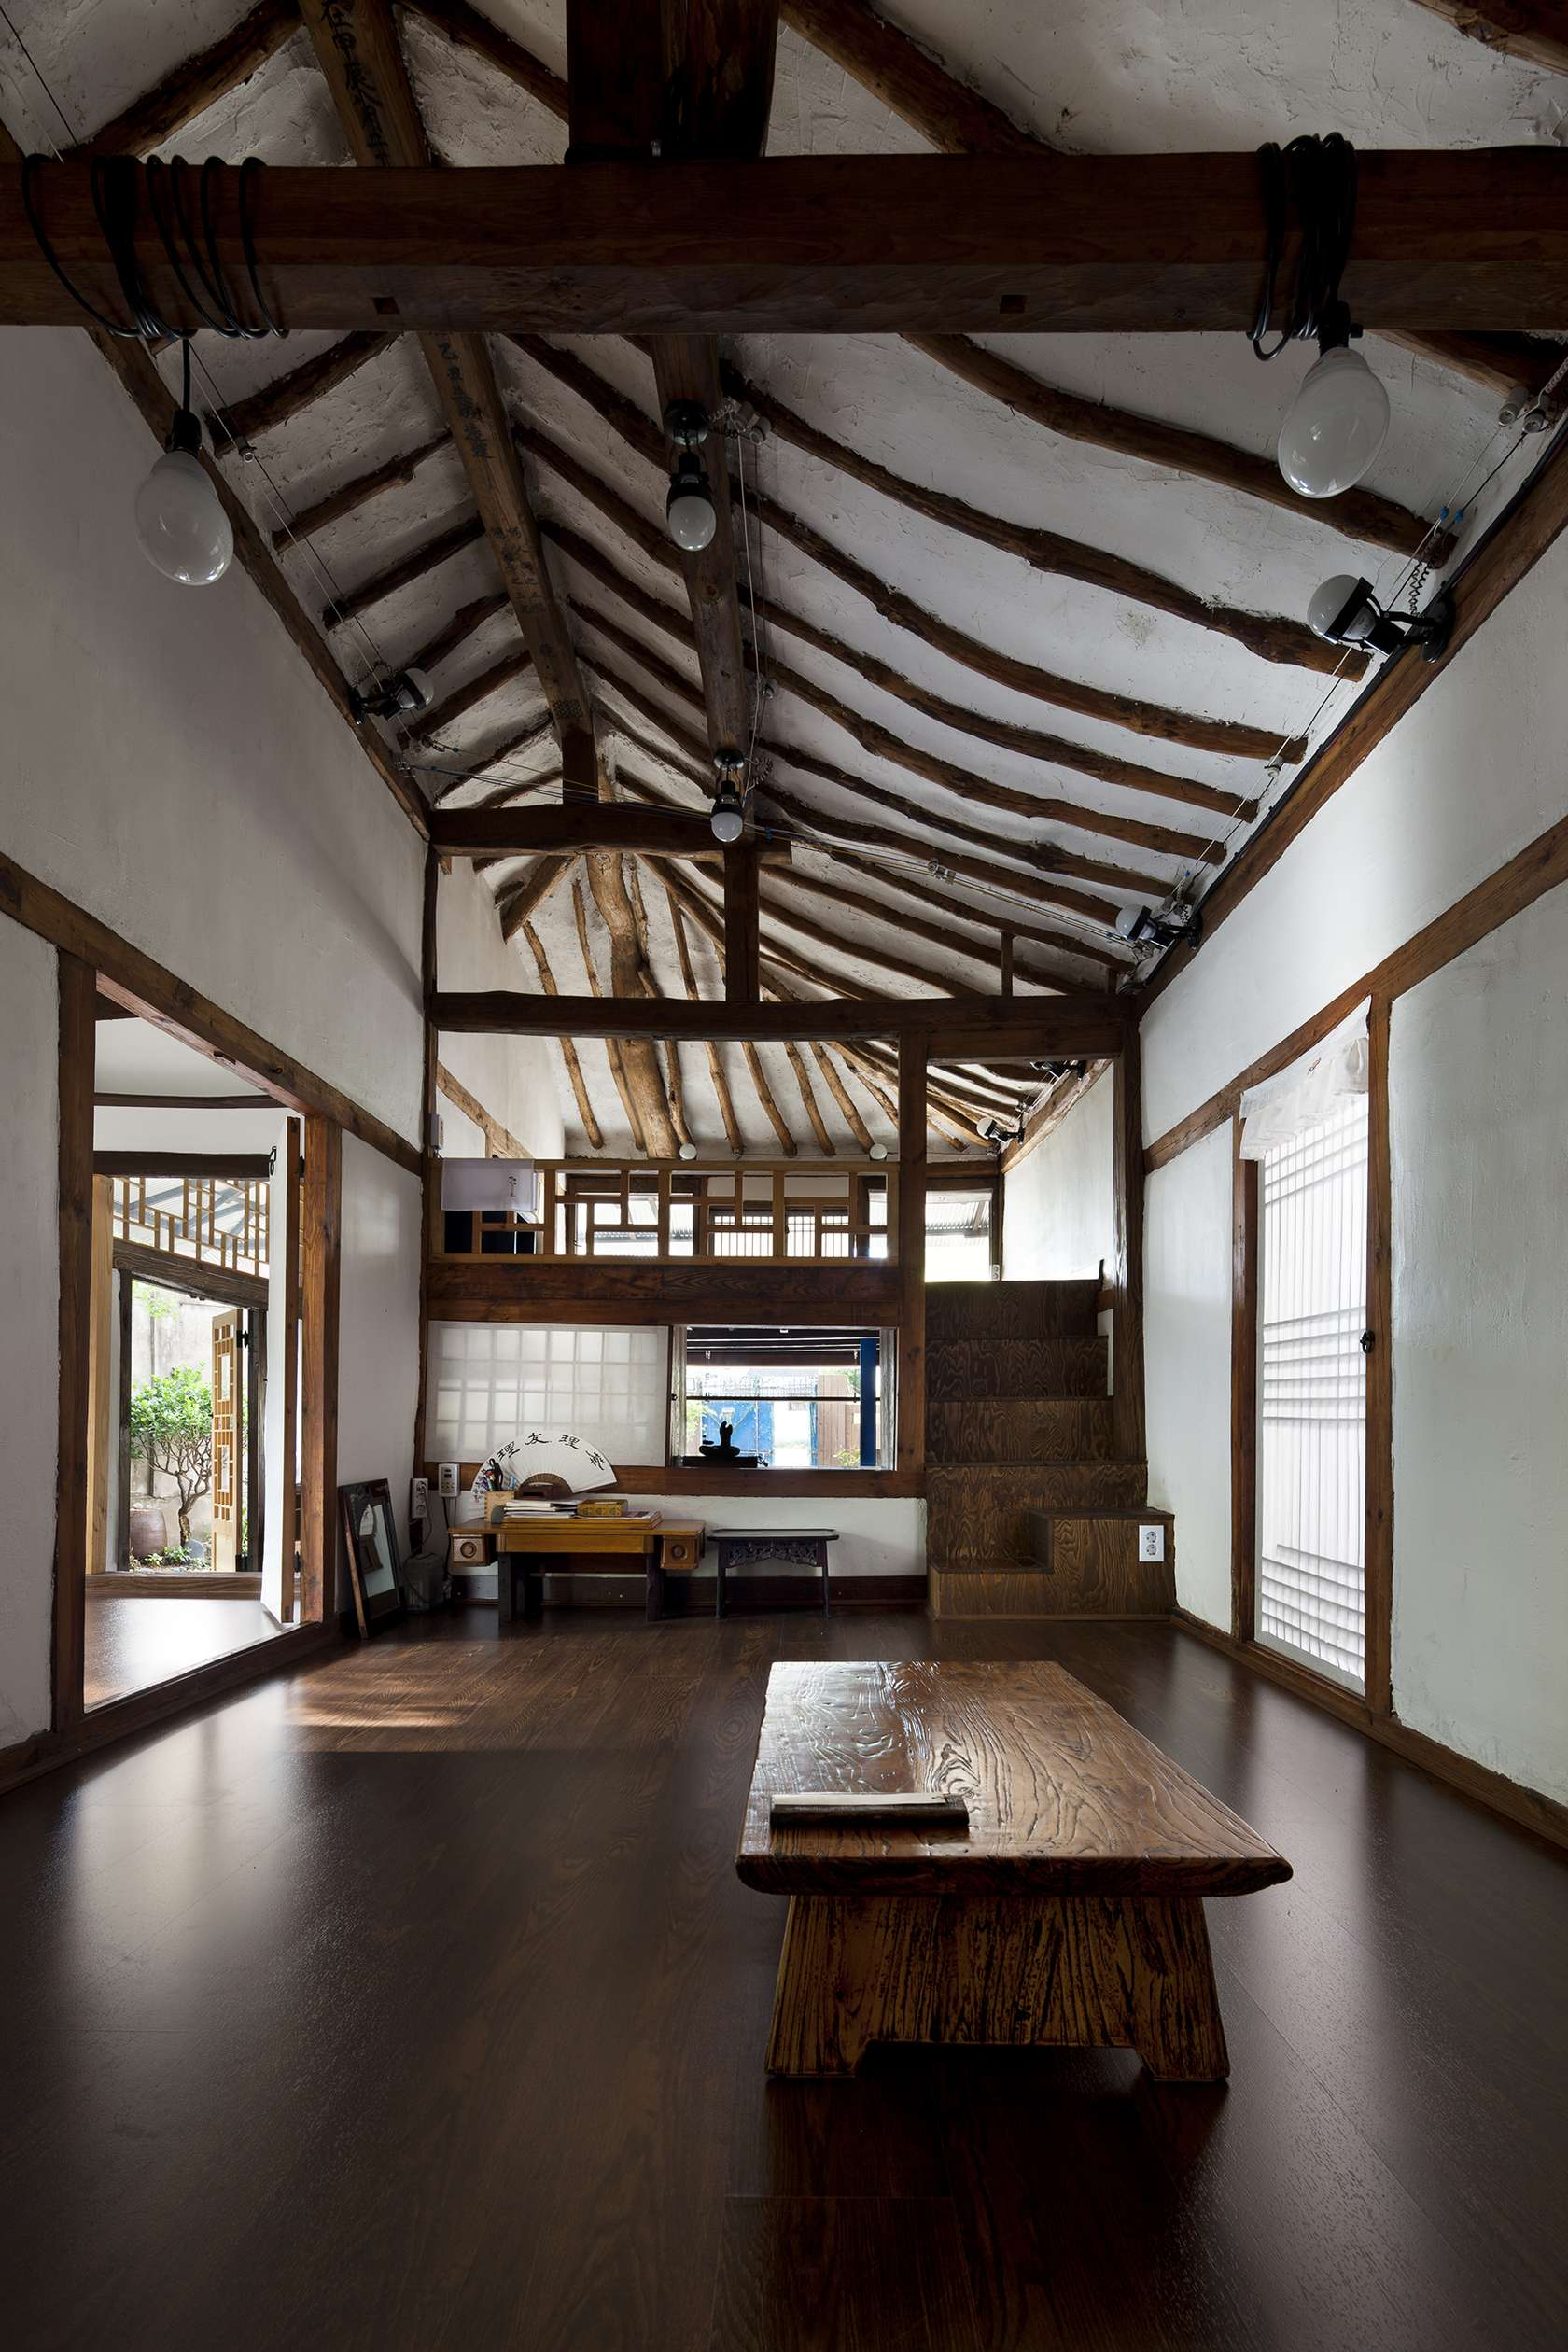 Neo traditional korean homes 6 modern updates on the vernacular style